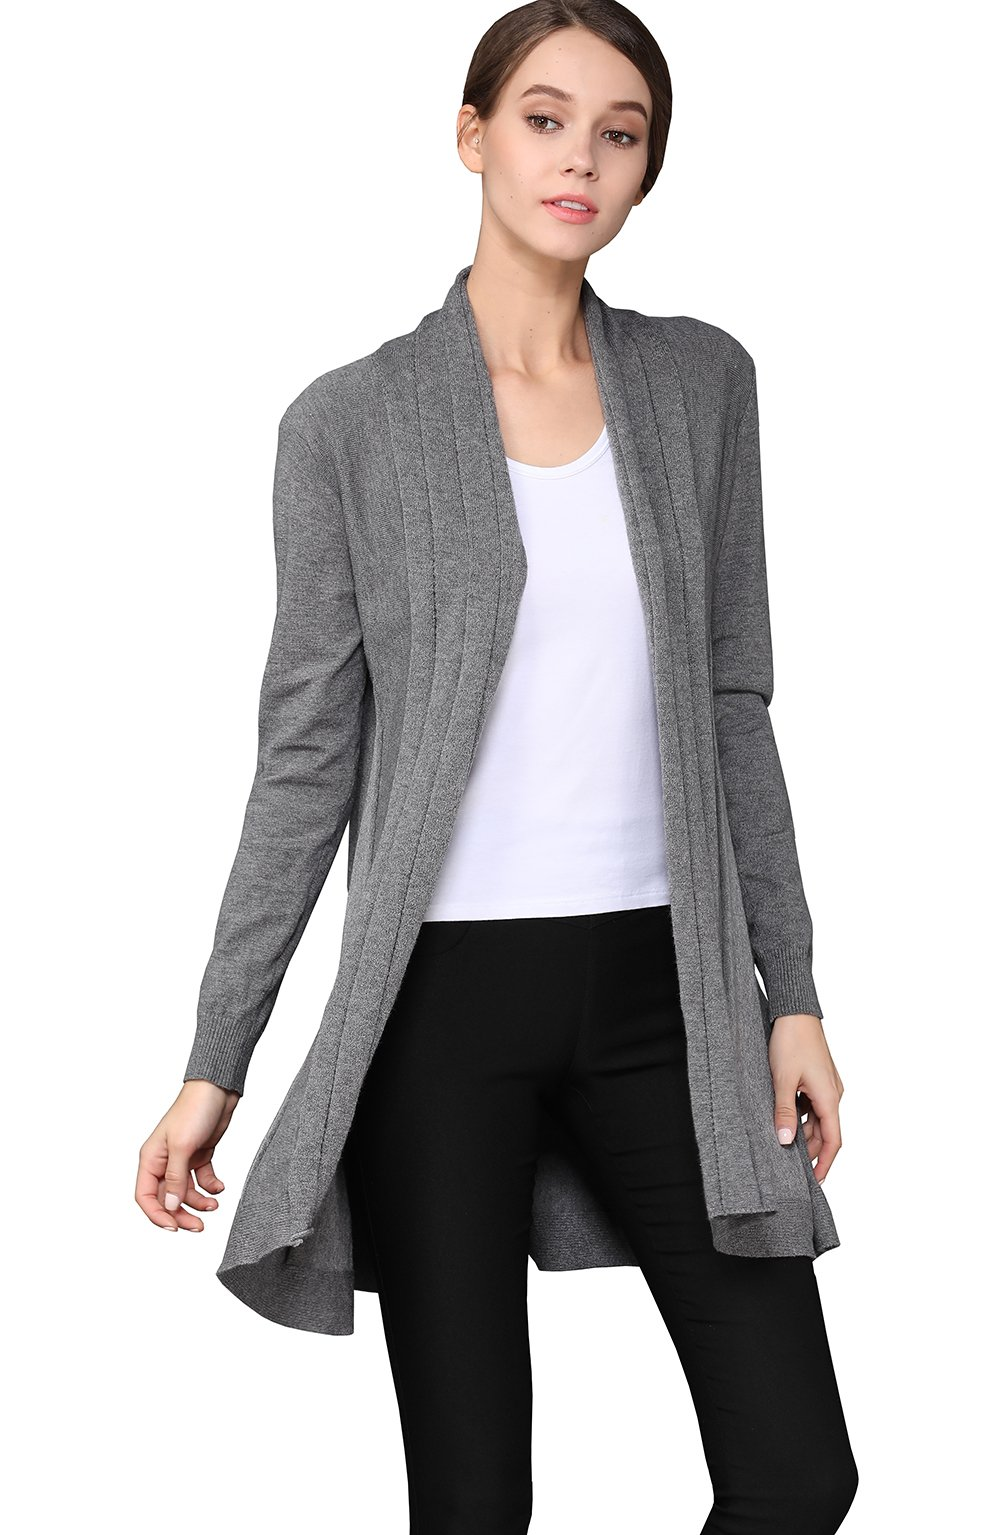 shengweiao Womens Long Sleeve Classic Knit Cardigan Sweater (Large, Dark Grey)